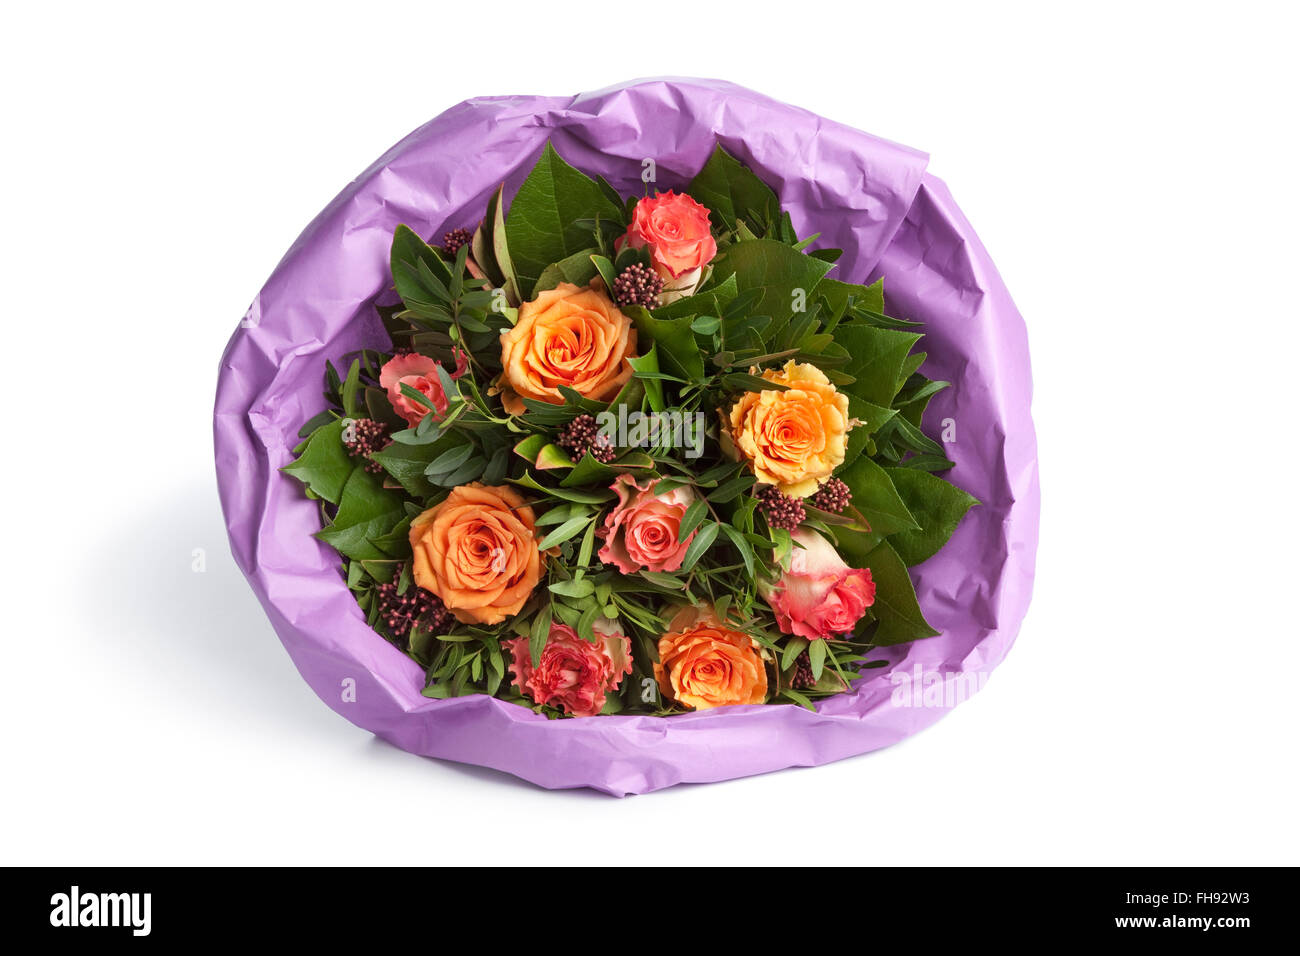 Bouquet flowers wrapped on paper stock photos bouquet flowers bouquet of fresh roses wrapped in paper on white background stock image mightylinksfo